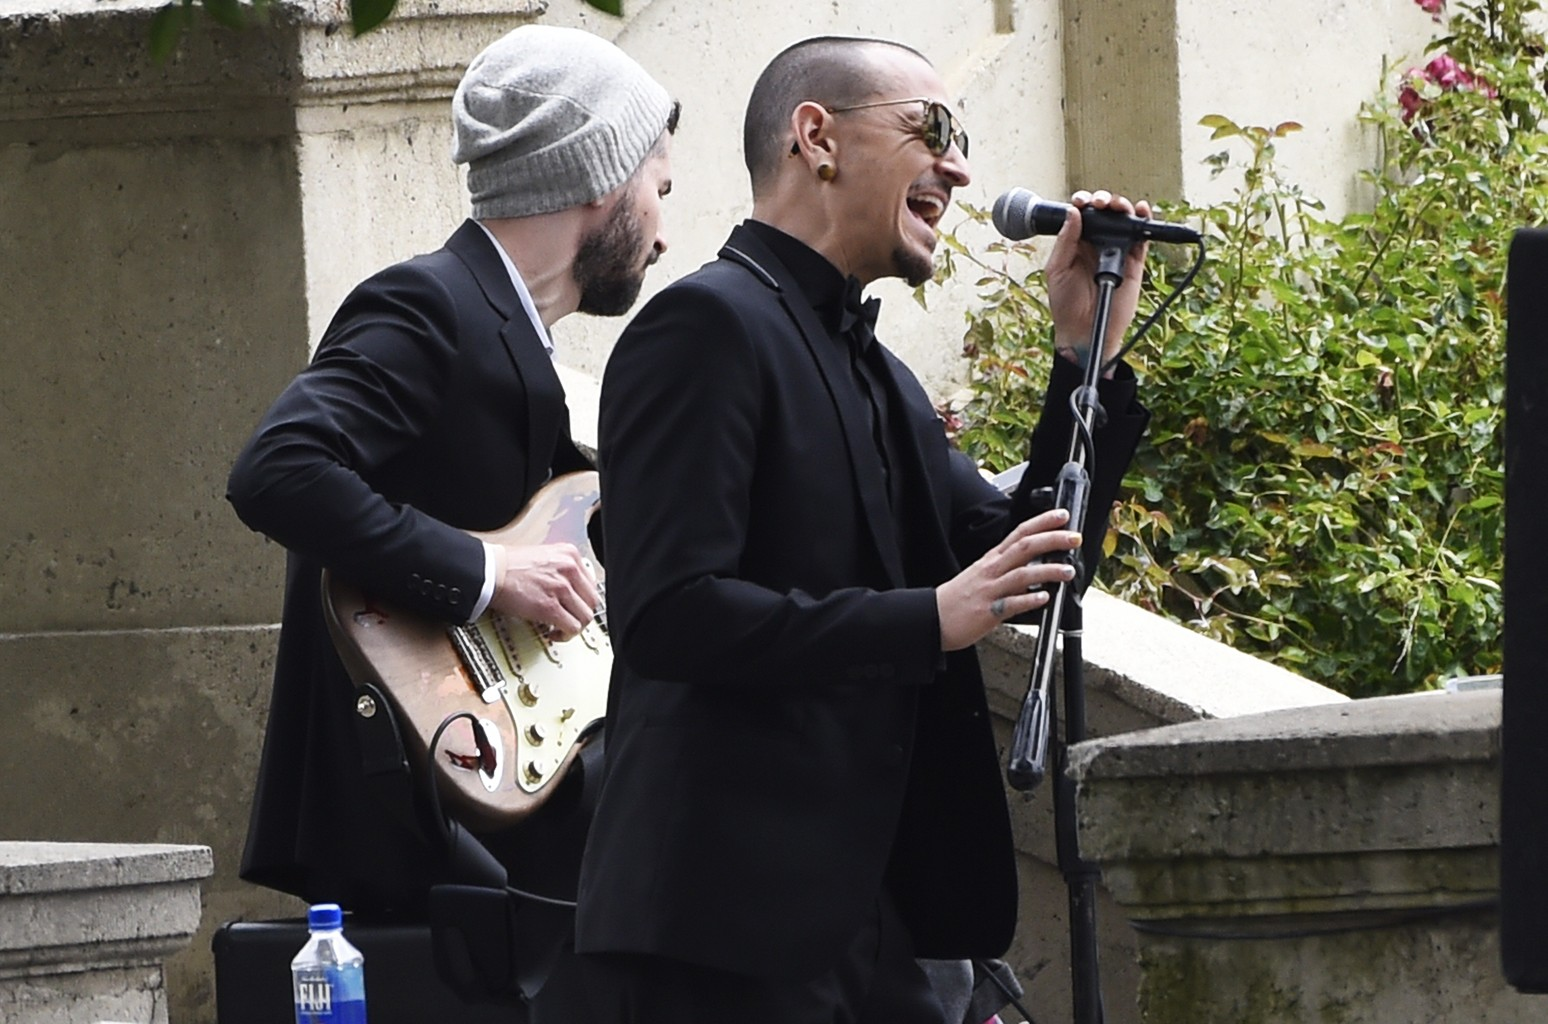 """Chester Bennington and Brad Delson of Linkin Park perform """"Hallelujah"""" at Chris Cornell's funeral at the Hollywood Forever Cemetery on May 26, 2017 in Los Angeles."""